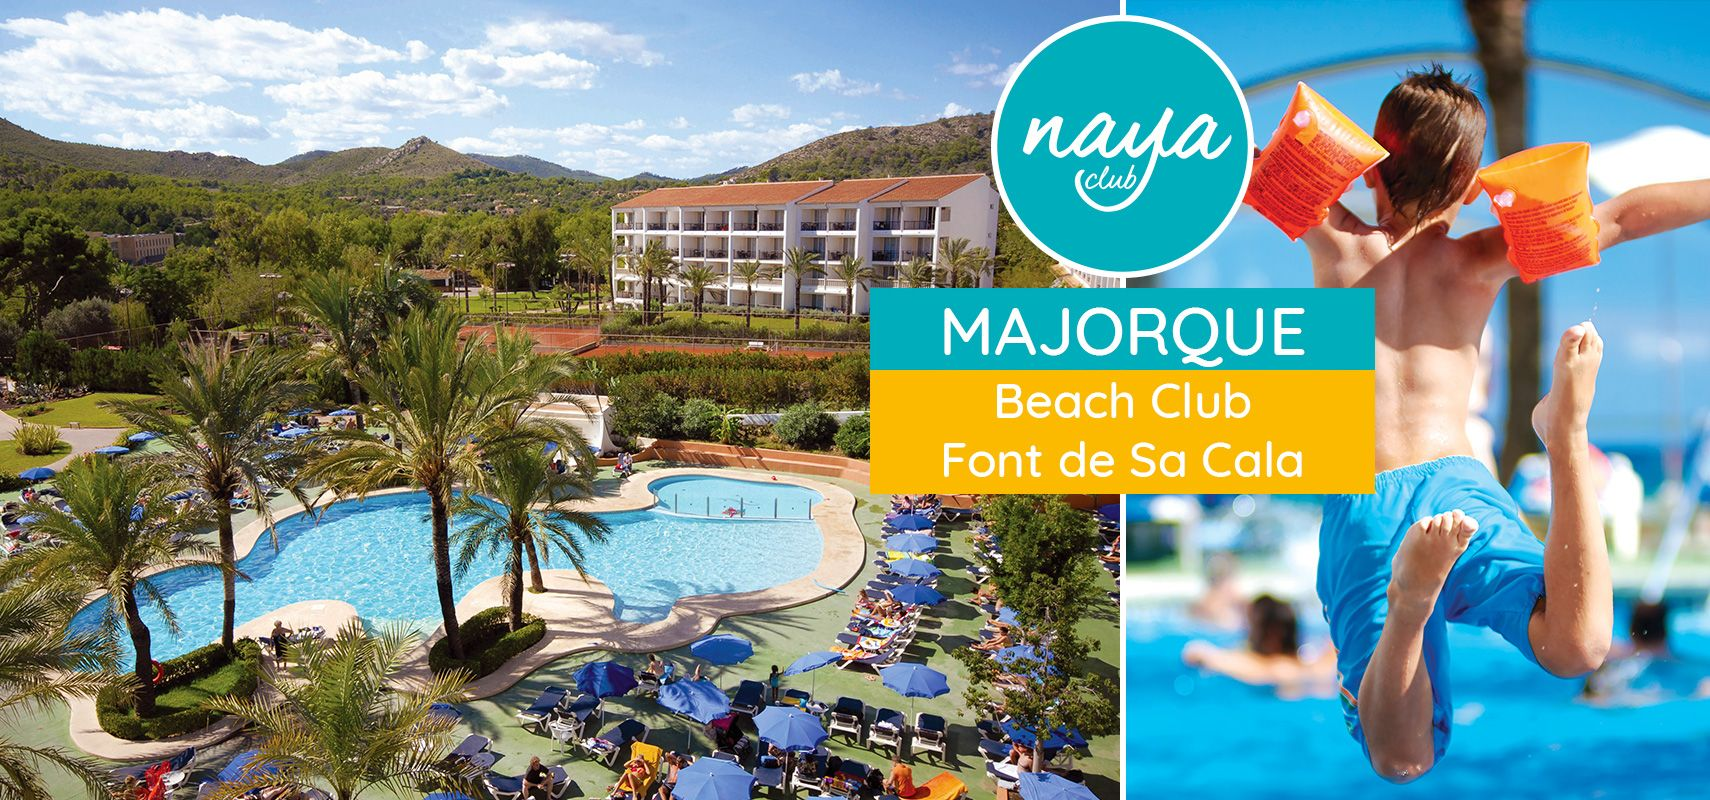 NAYA CLUB MAJORQUE 4*(NL) pas cher photo 1